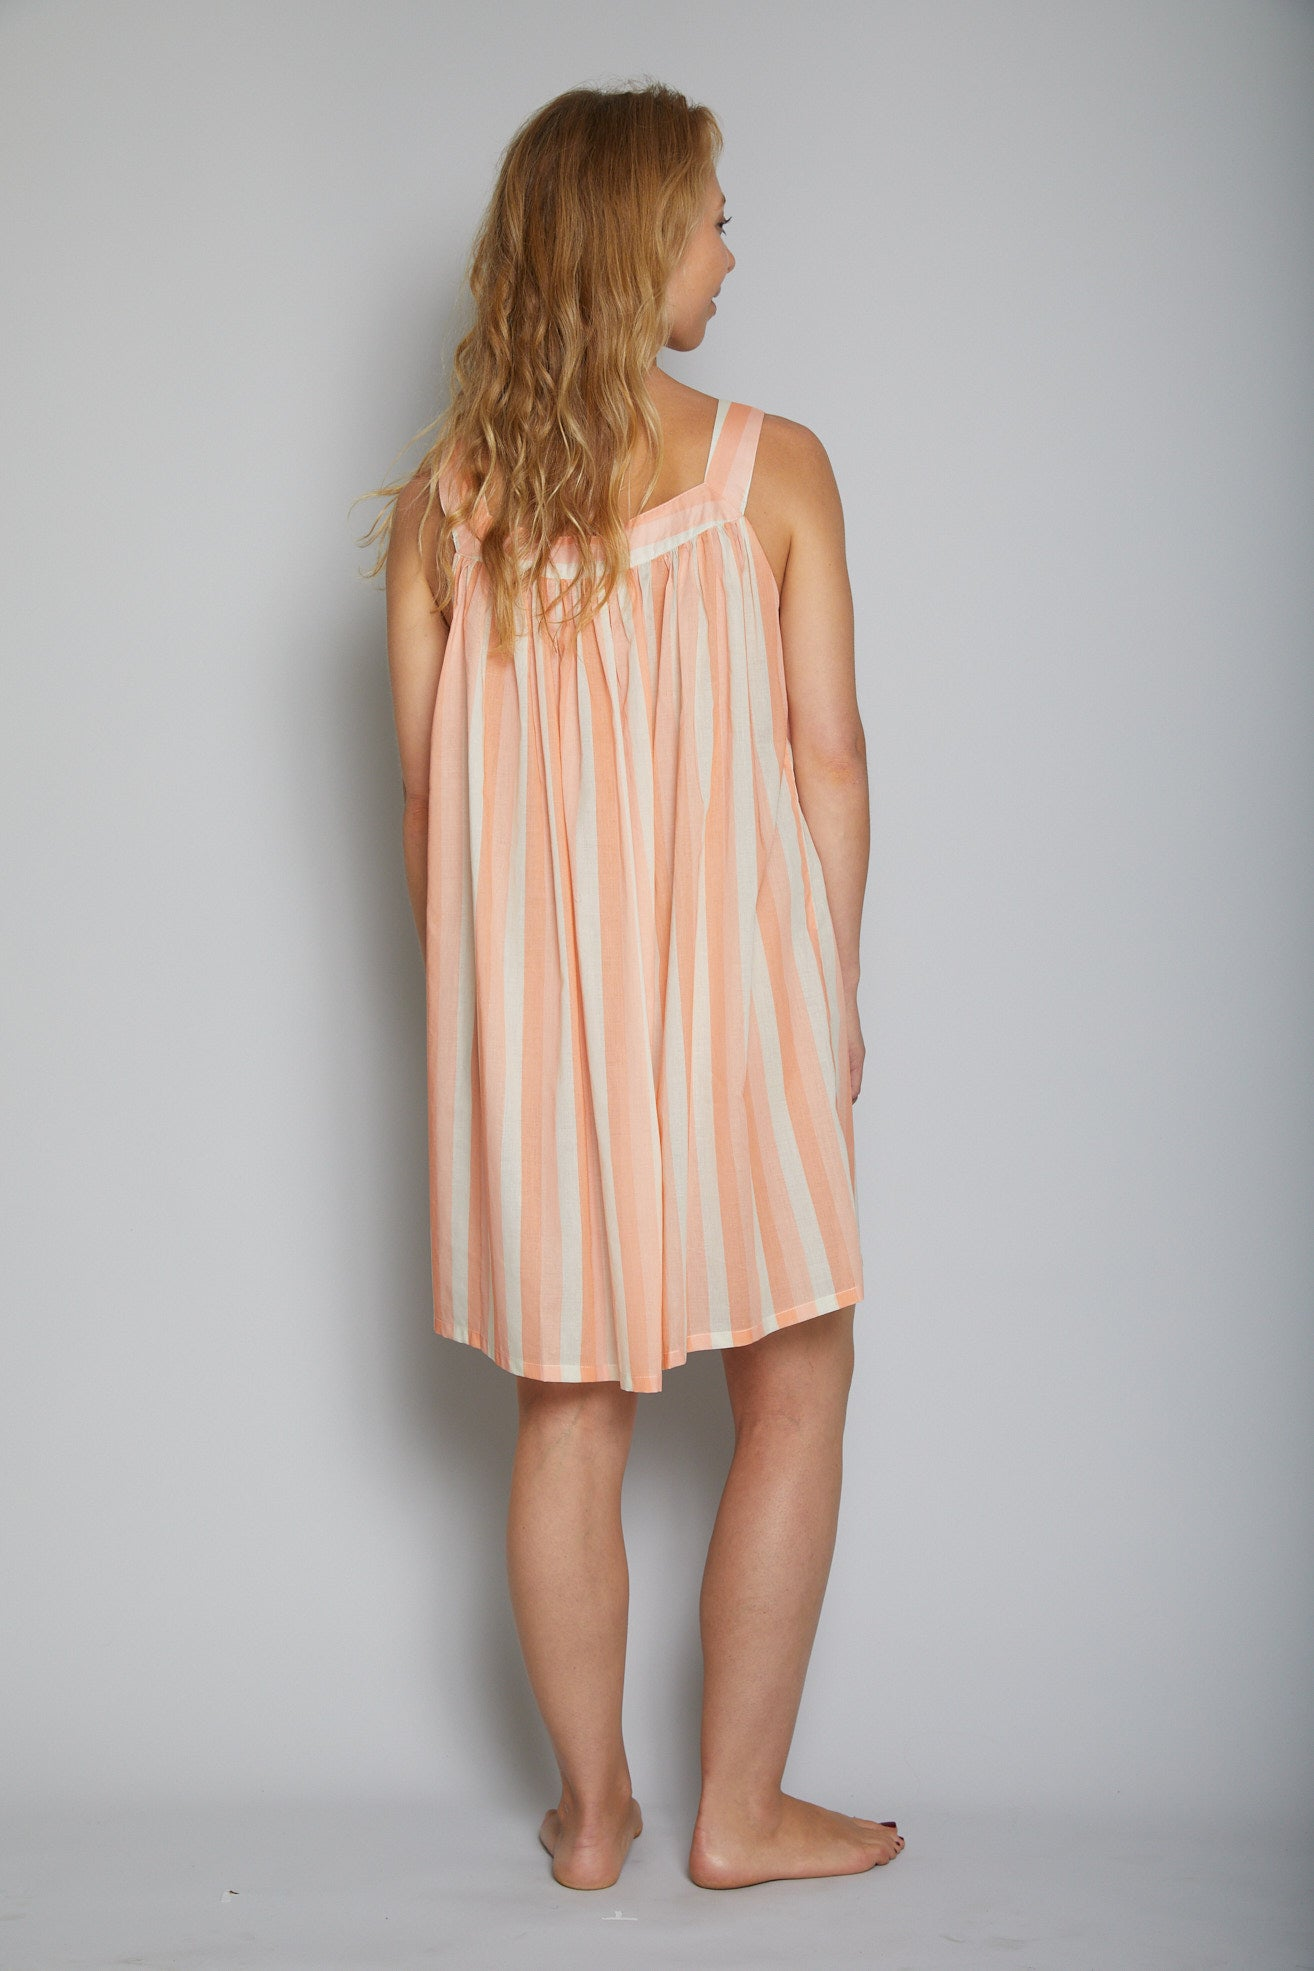 Striped Short Square Neck Nightie